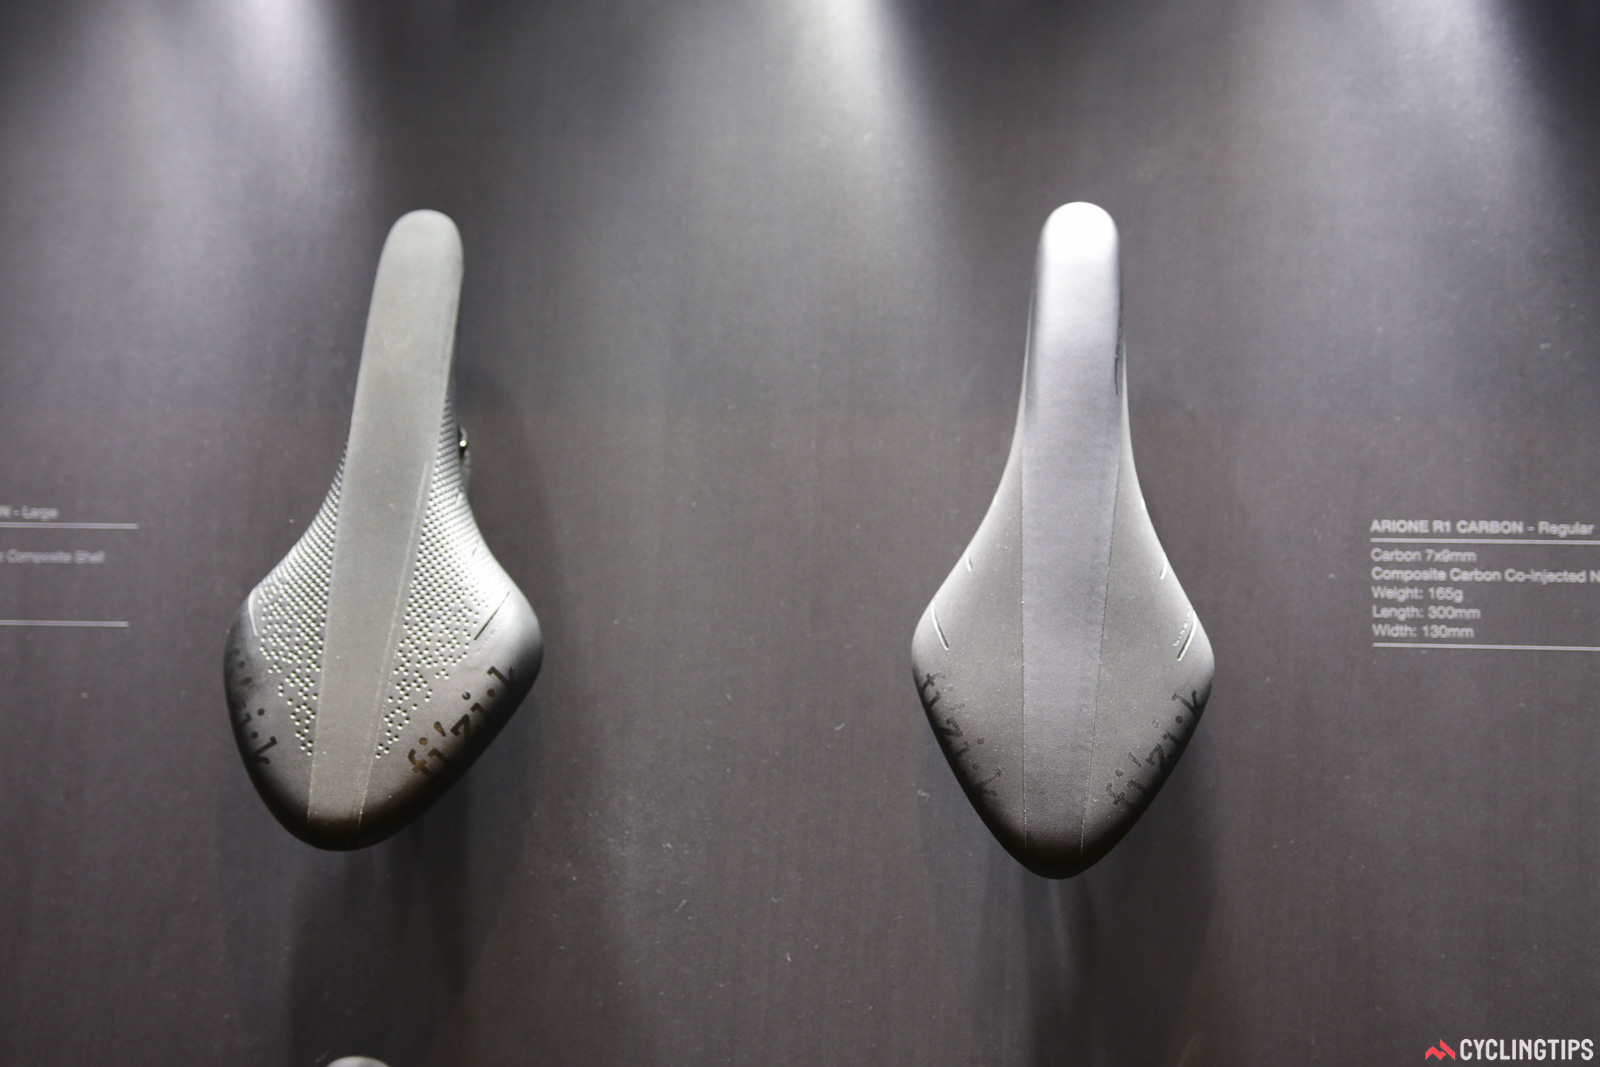 While they haven't ditched flexibility as a measure for saddle choice, fi'zi:k has launched a range of width options in its popular models. What saddle width is best? The Italians are suggesting your power output is the measure. While we applaud the additional choice, we're not convinced by the theory that wide saddles are only for those with lower power. Photo: David Rome.